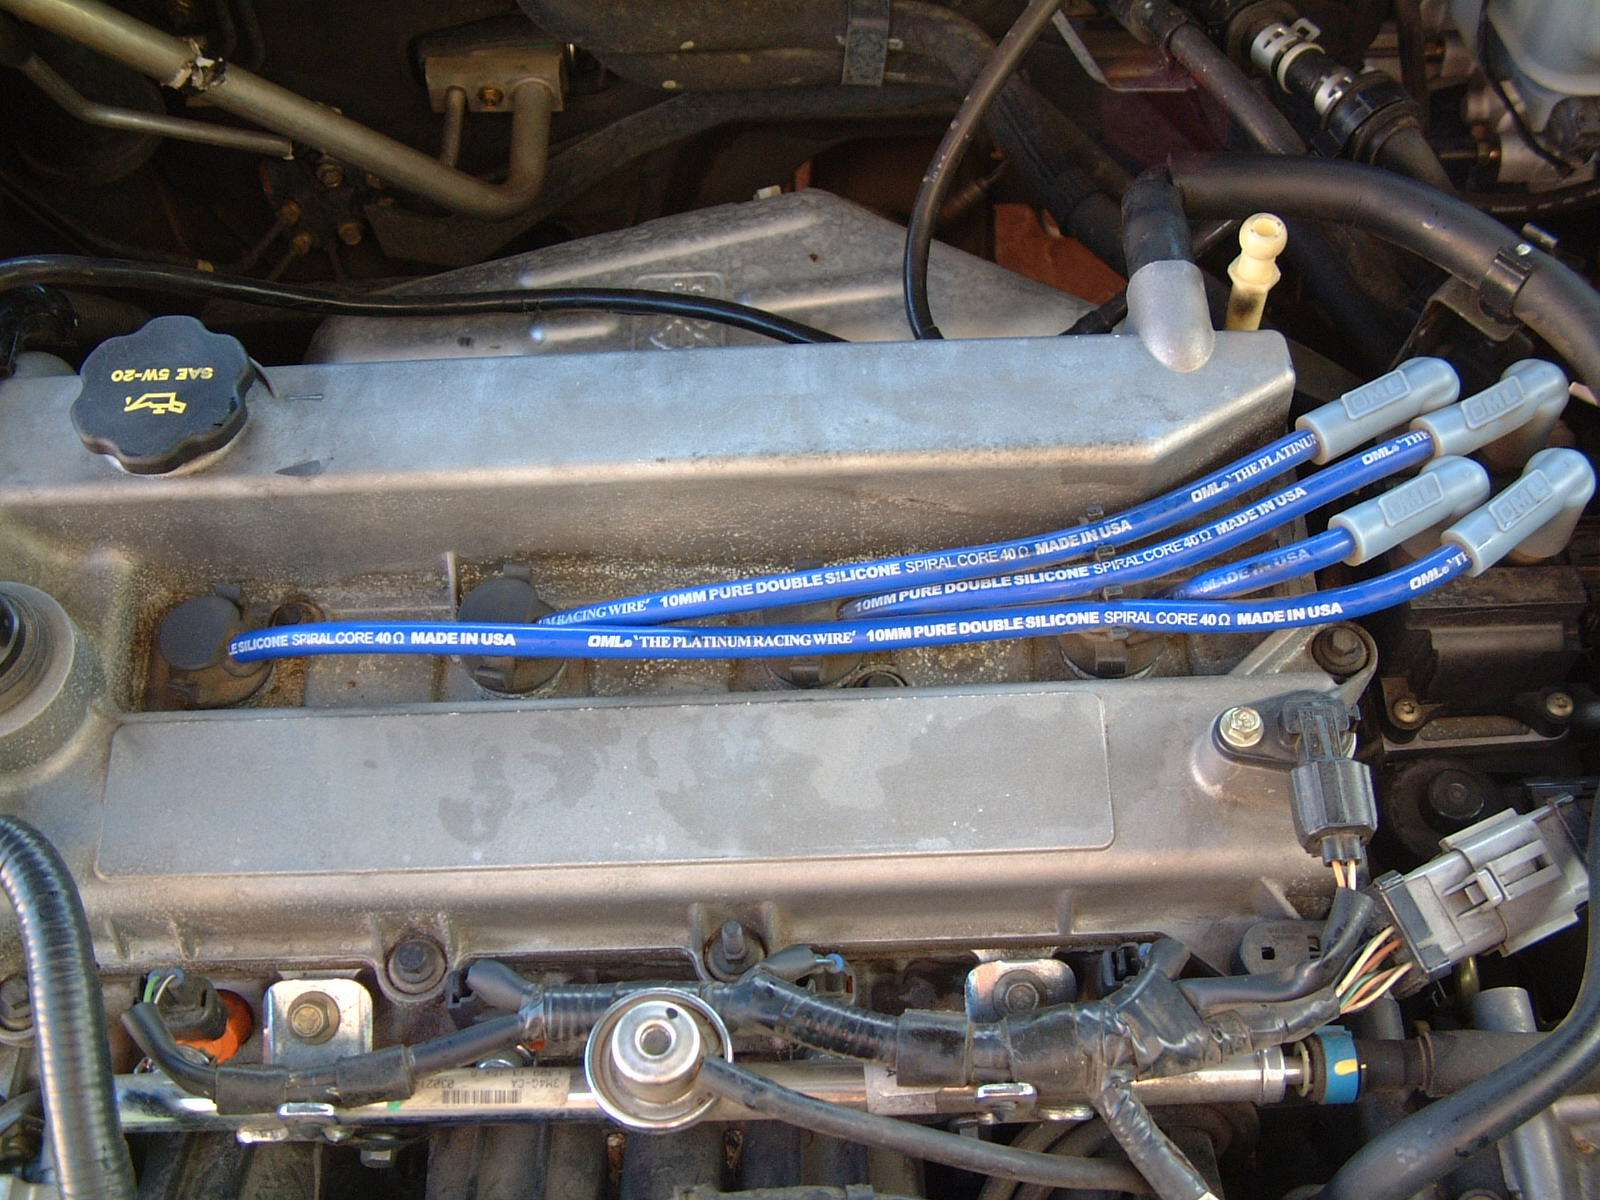 50795d1162742383 lag problem 2 3i engine atx mazda6 stalling, slow acceleration and starting issues mazda 6 forums  at gsmx.co